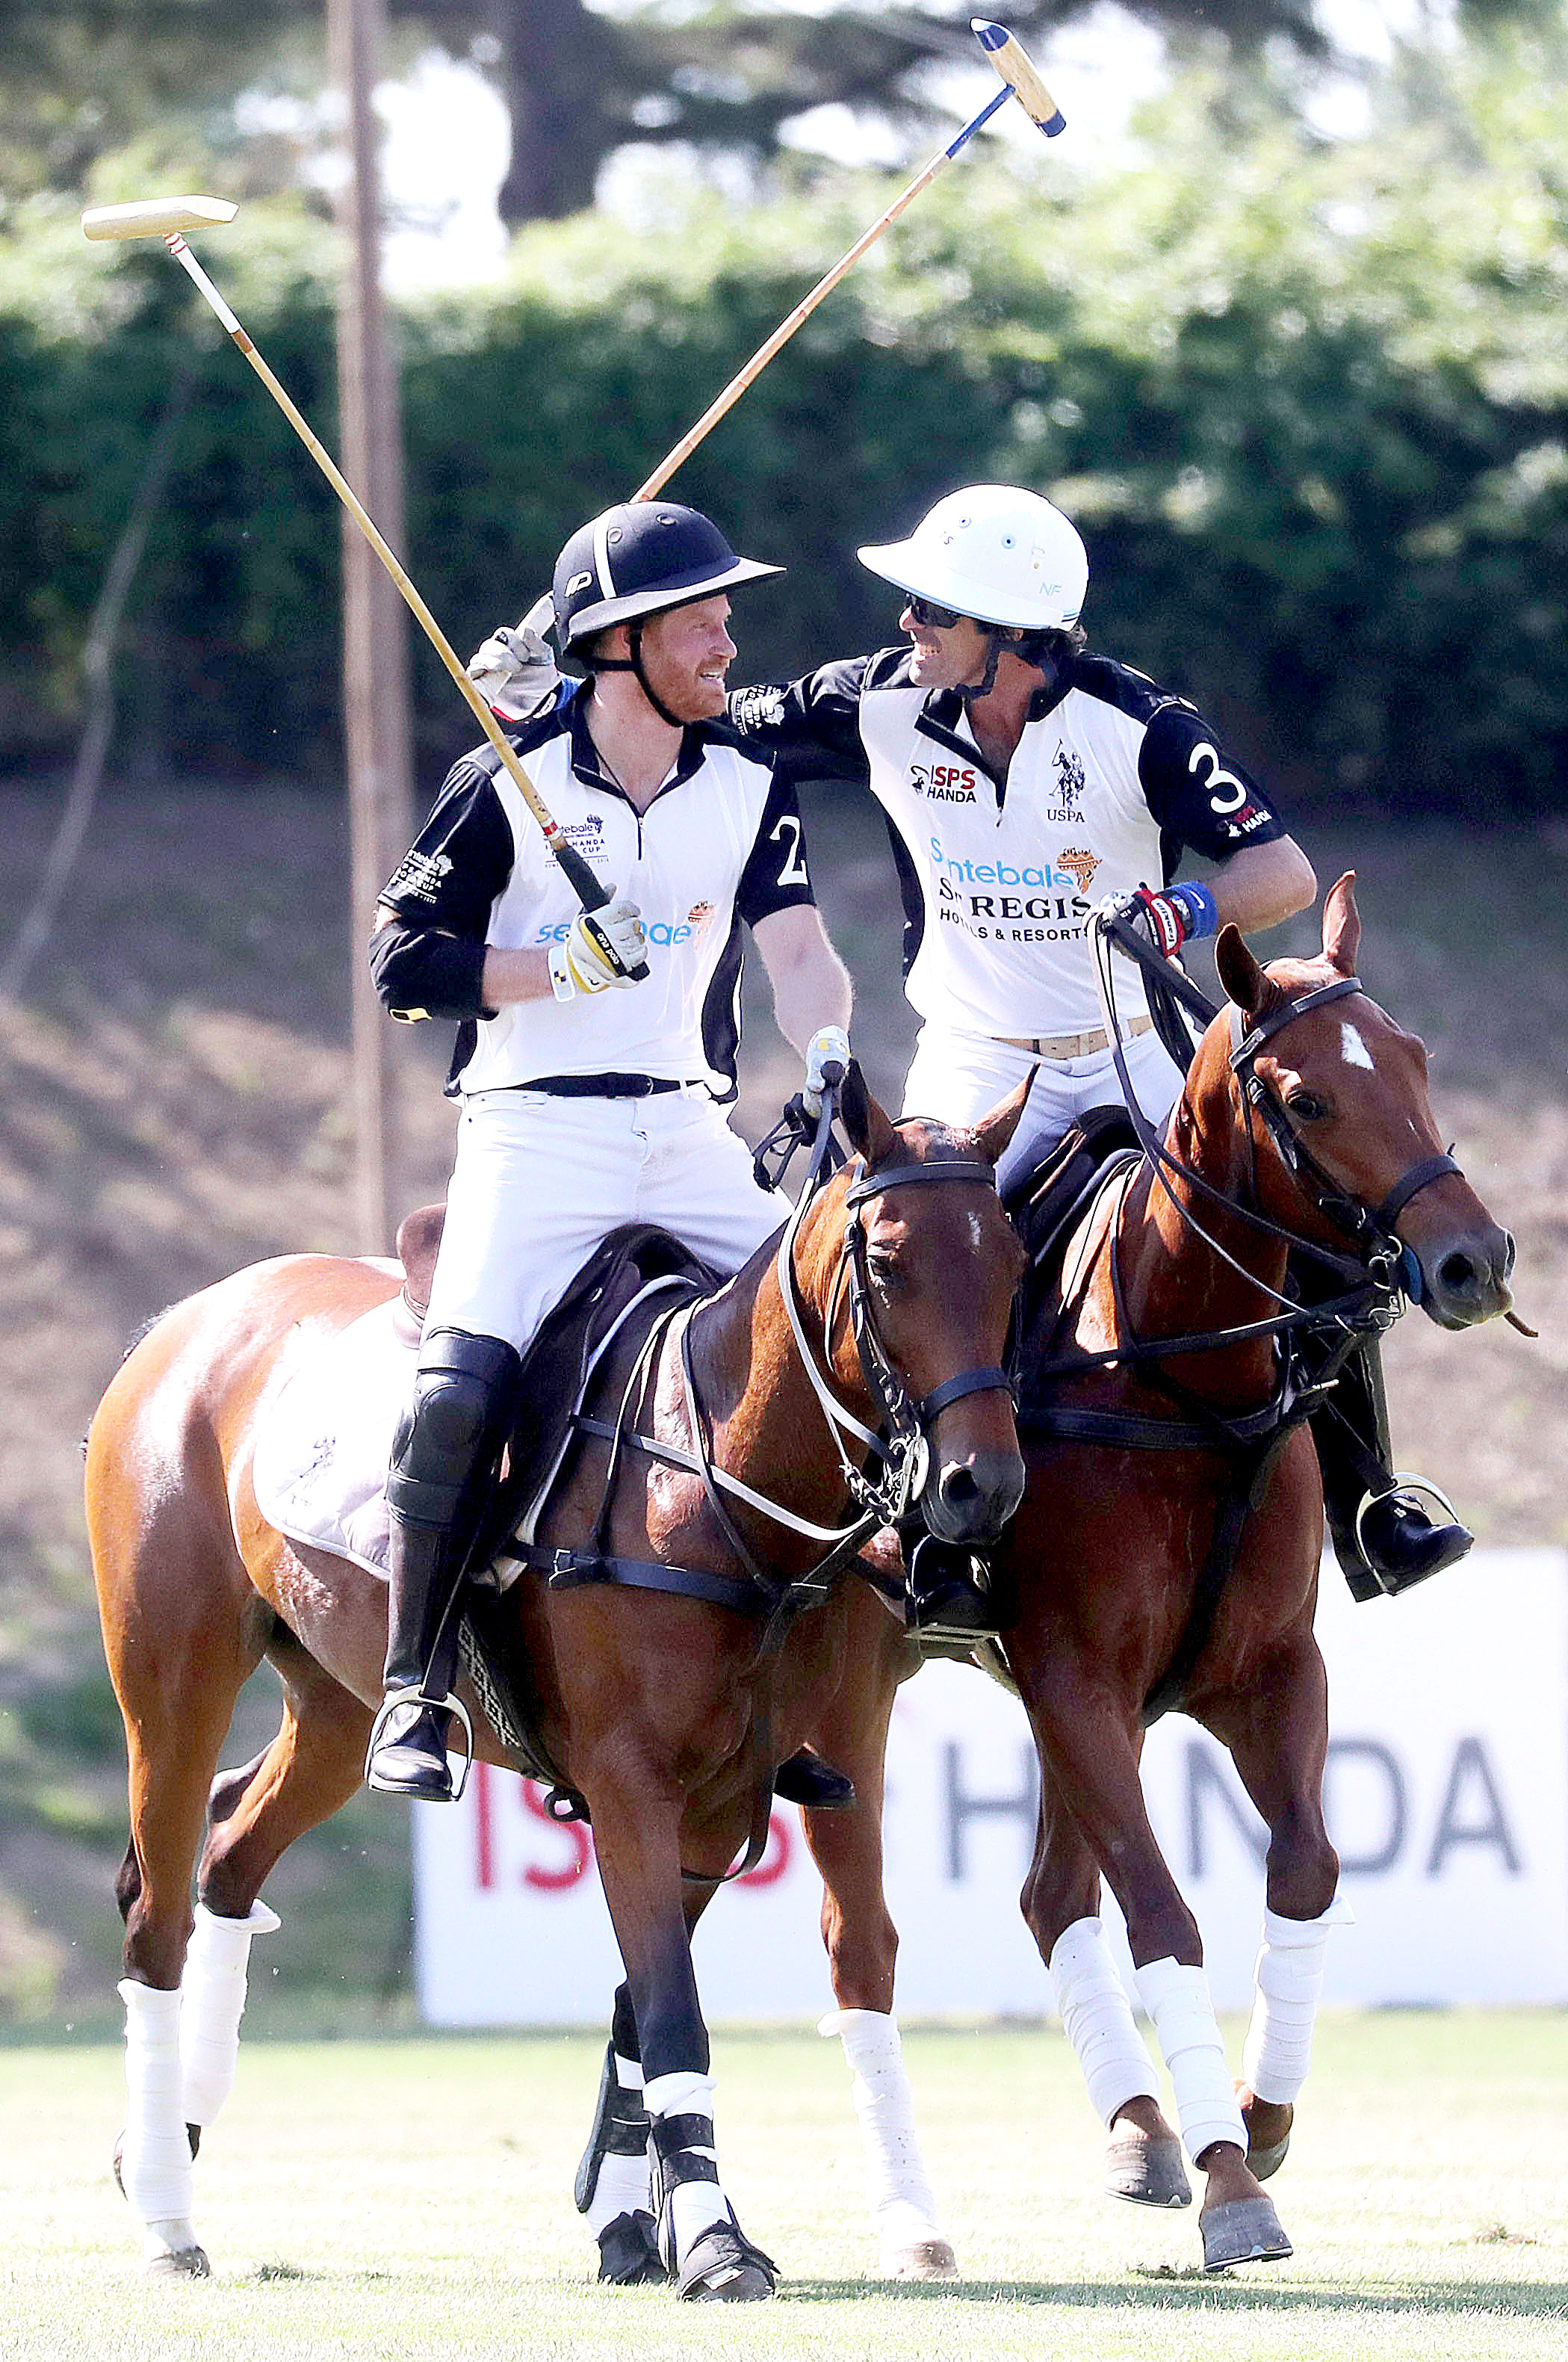 Prince Harry Spends First Night Away From Meghan Archie - Friday marked the ninth annual Sentebale ISPS Handa Polo Cup.